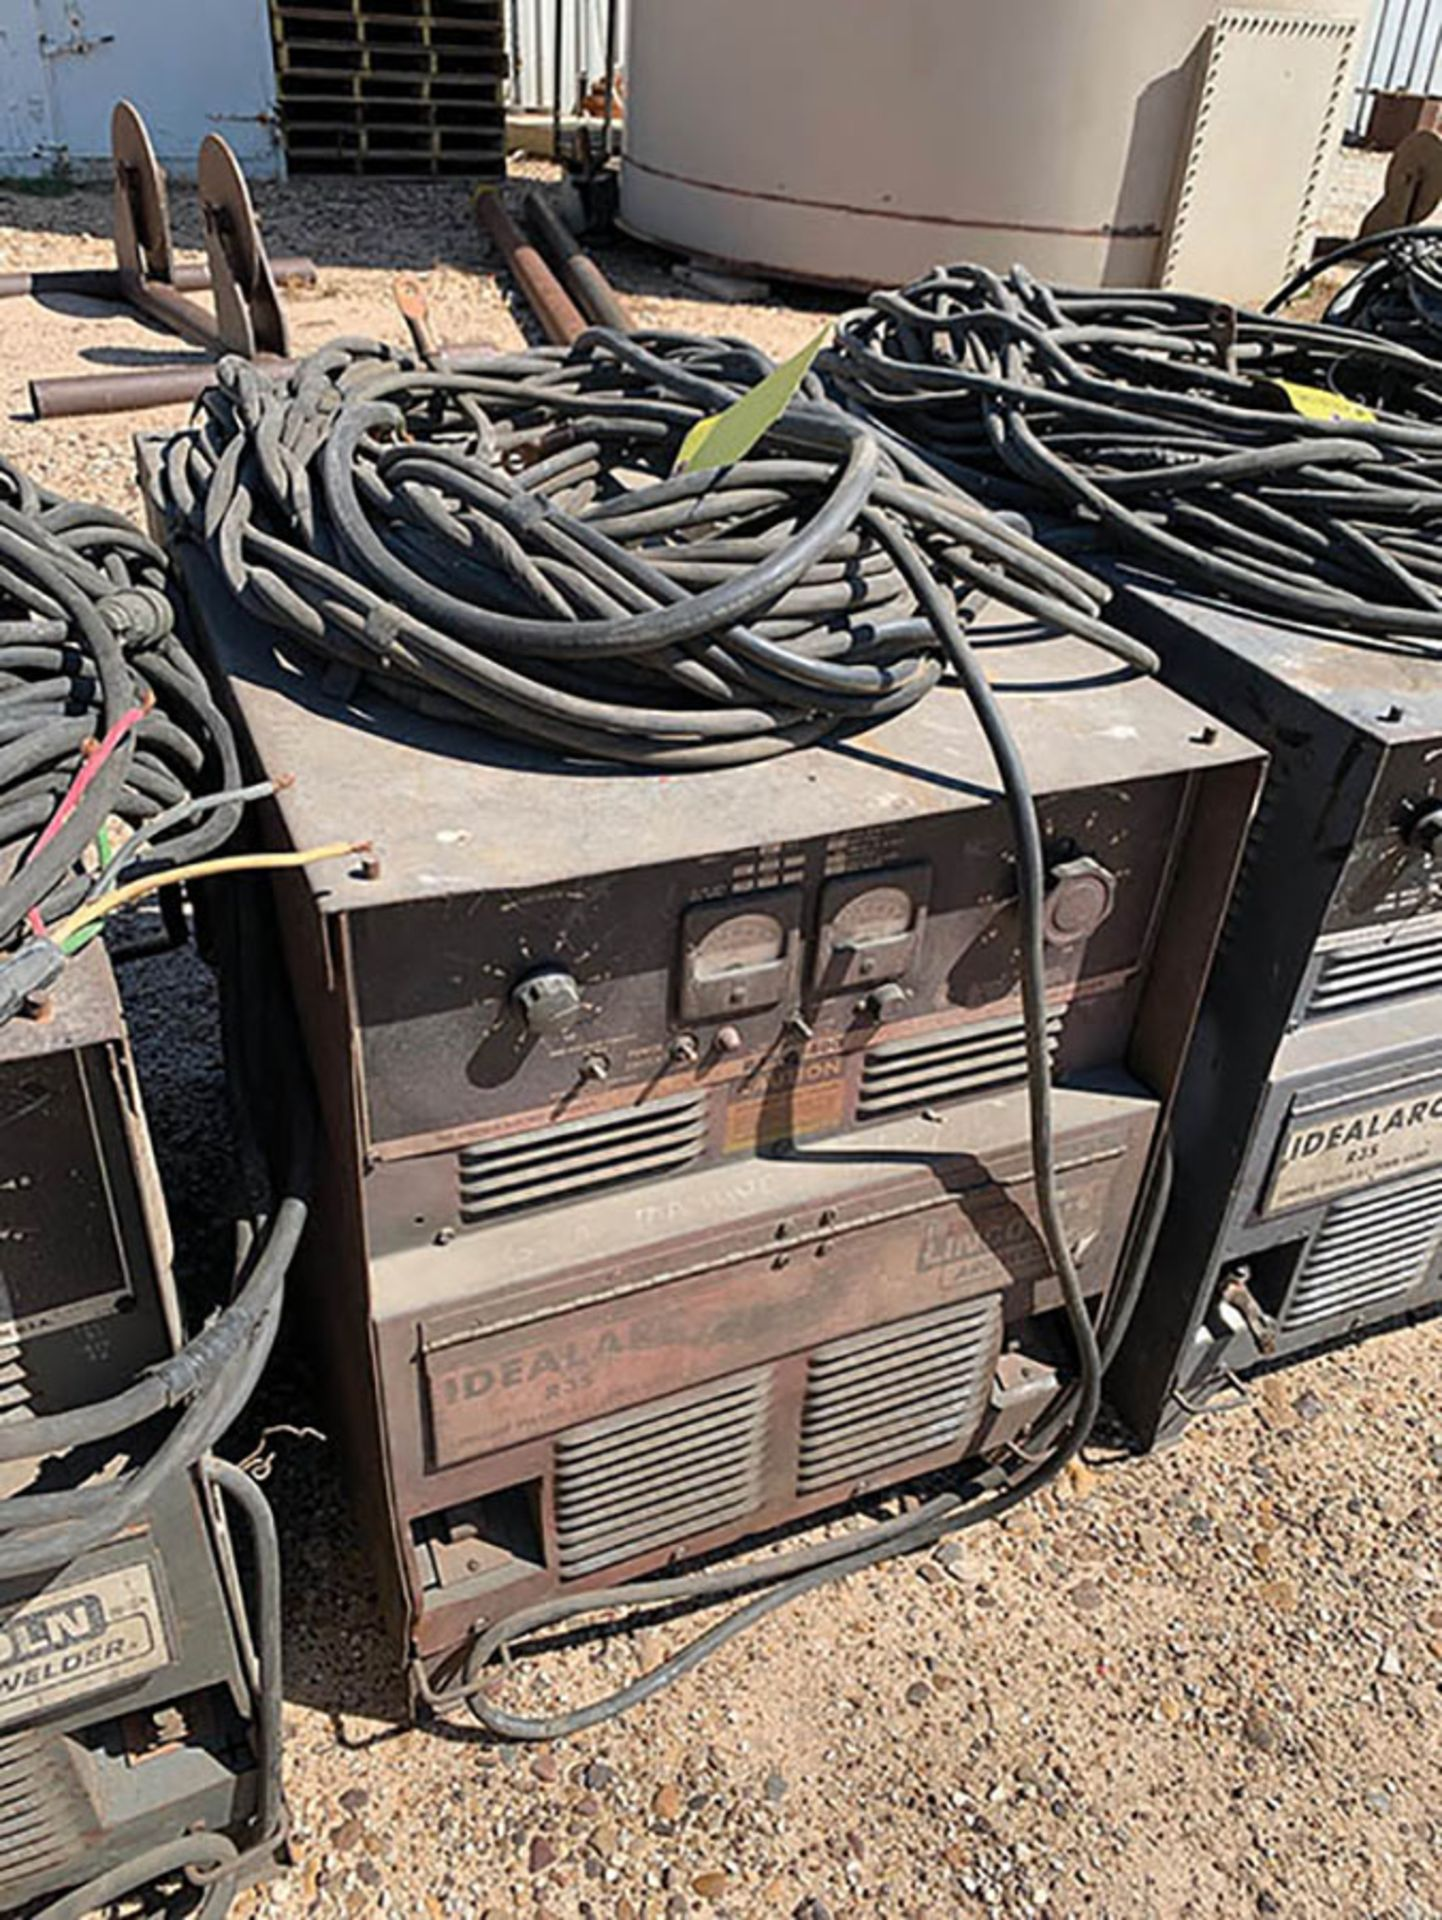 LINCOLN R3S WELDING POWER SOURCE, S/N AC430148